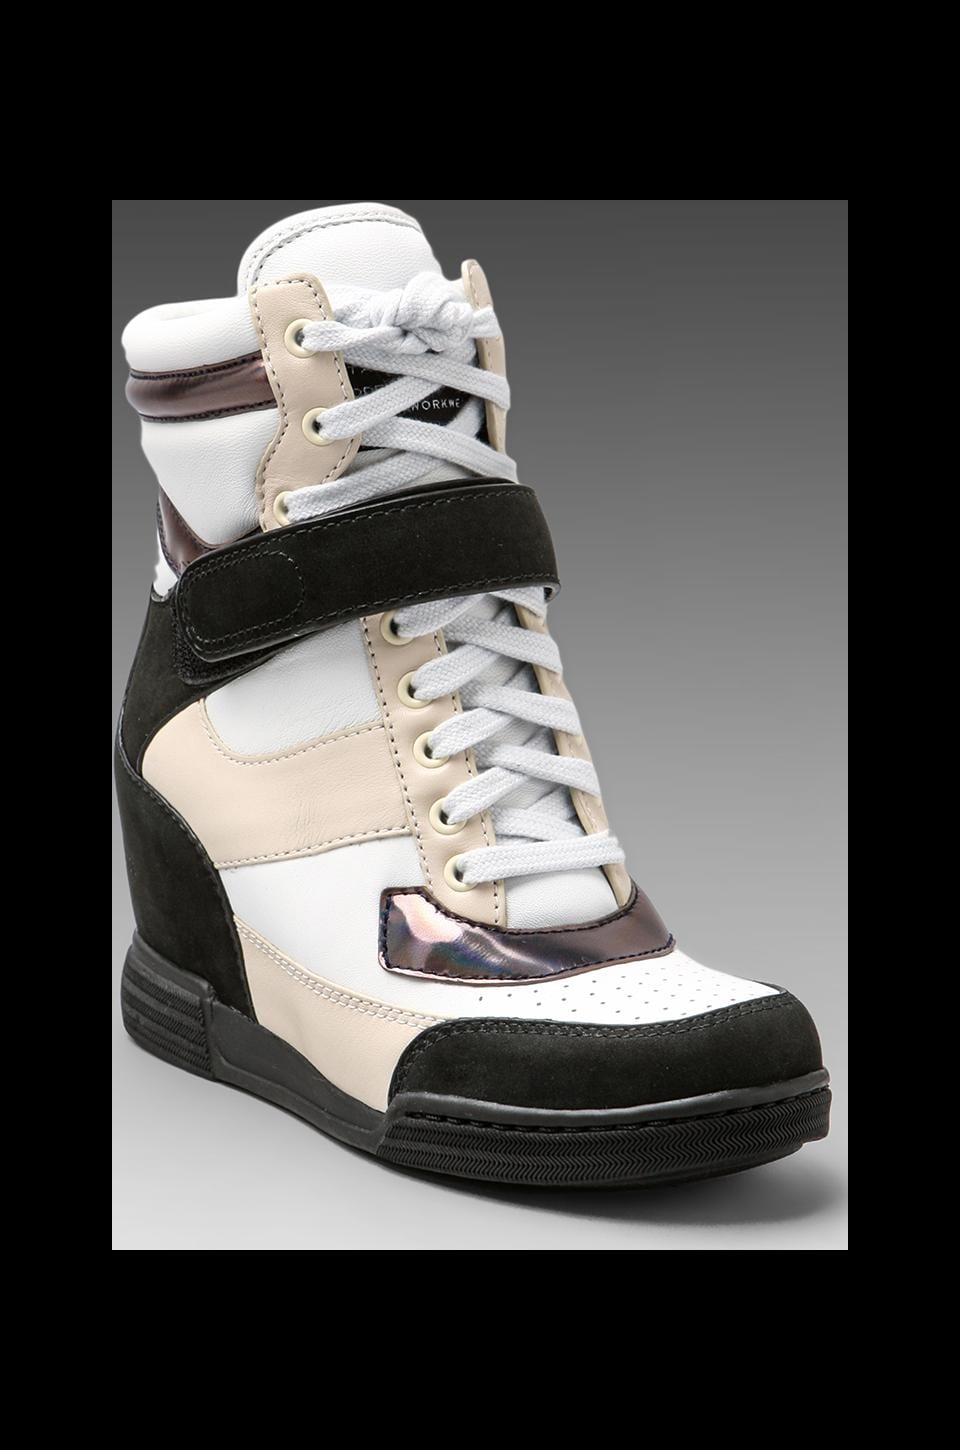 Marc by Marc Jacobs Sneaker Wedge in Black/Black/White/Oatmeal